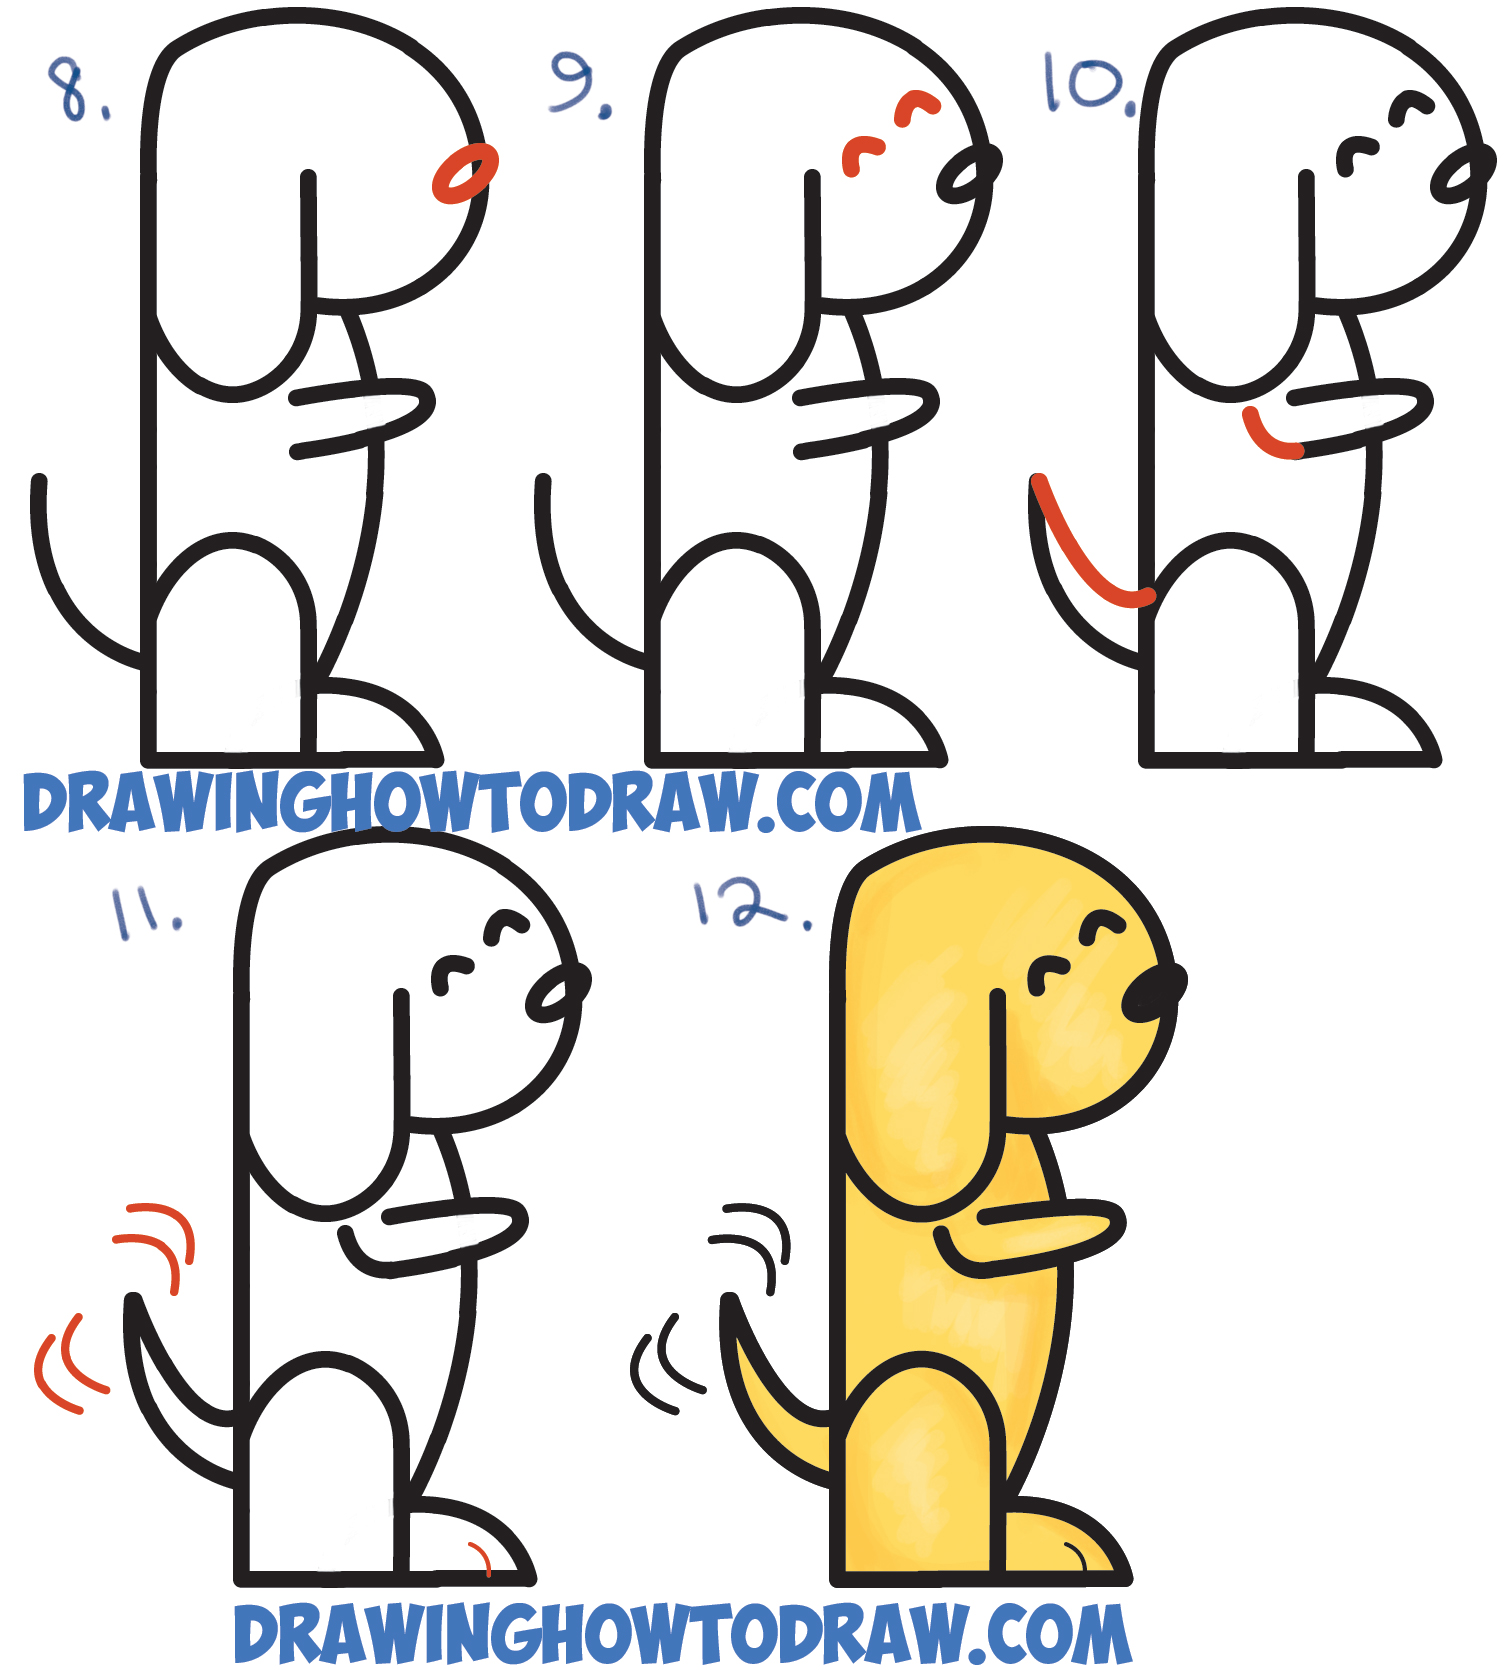 how to draw a cartoon dog begging from 2 letter u0027h u0027 shapes easy